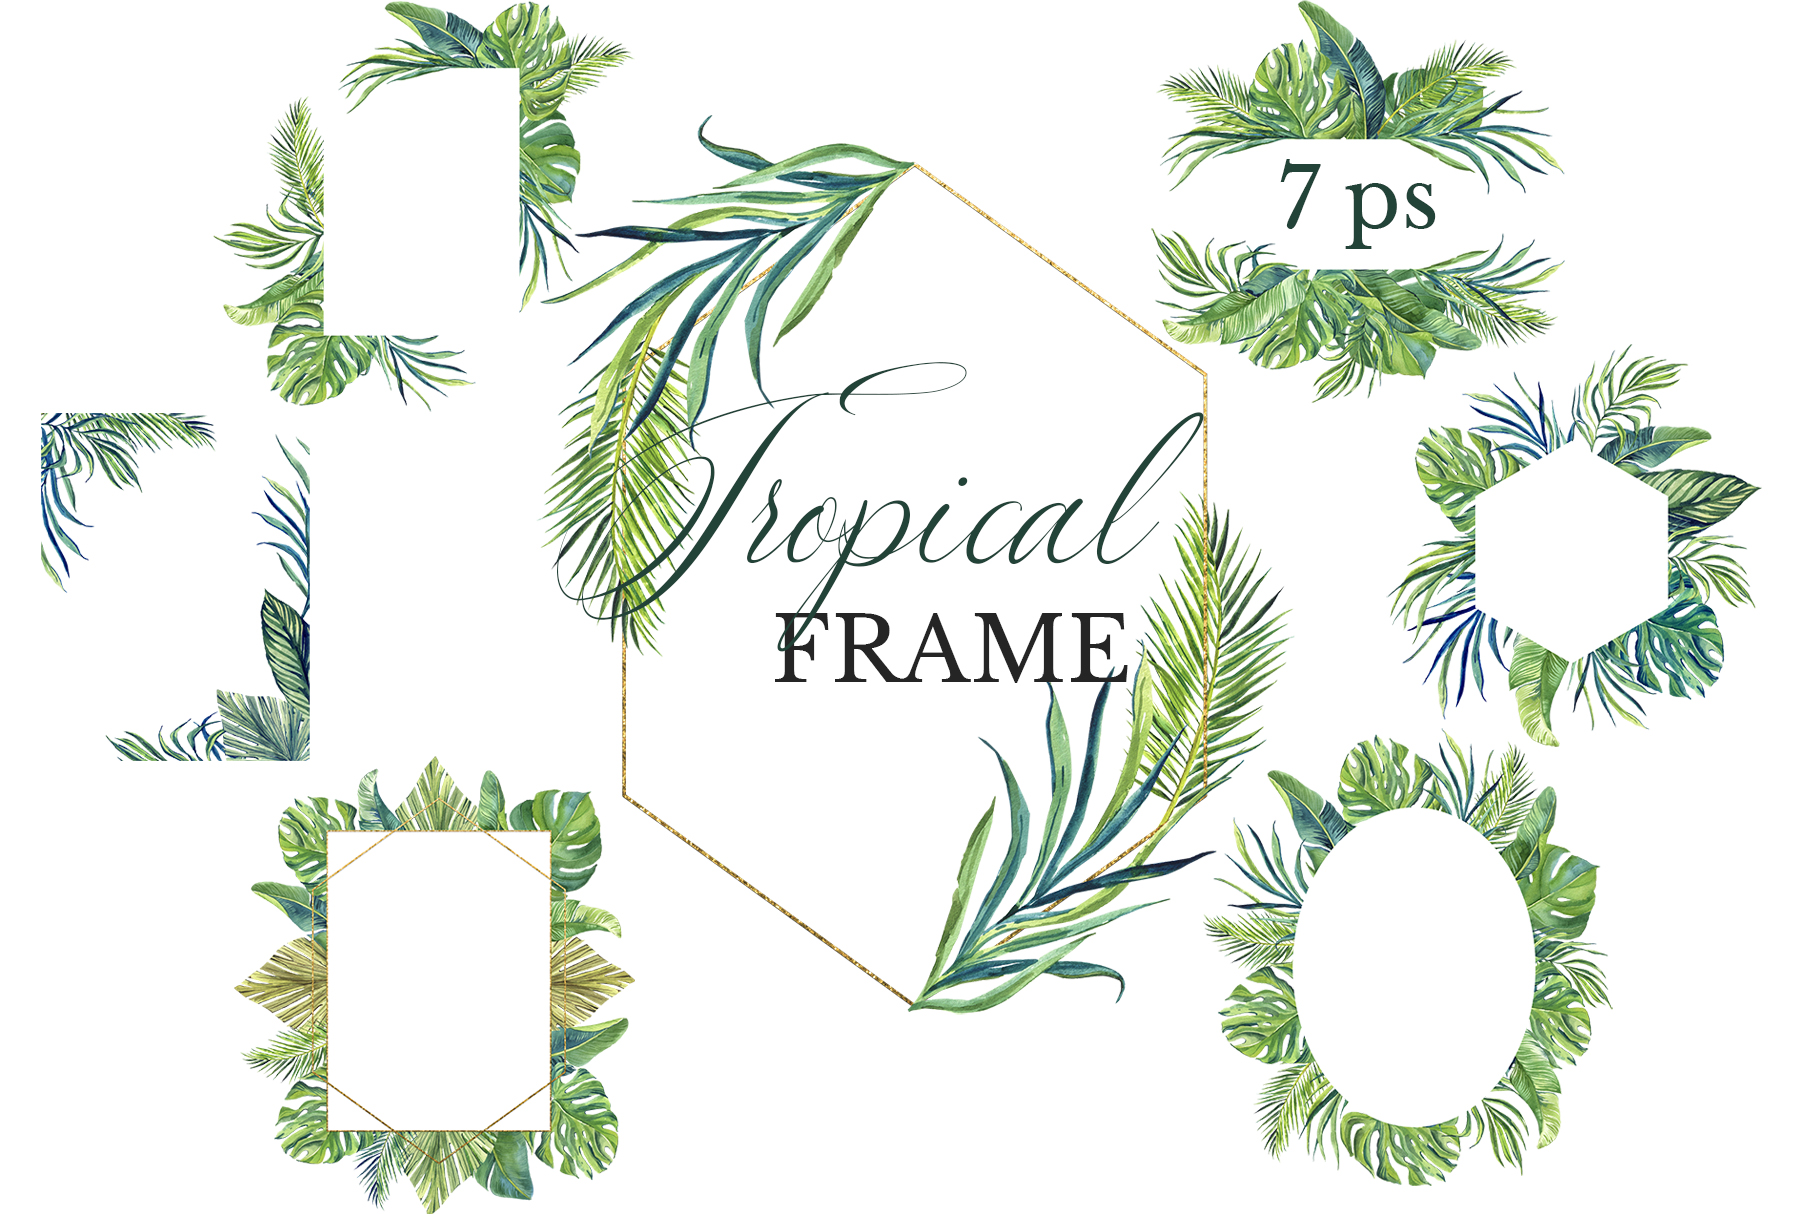 Download Free Greenery Frame Clipart Graphic By Lena Dorosh Creative Fabrica for Cricut Explore, Silhouette and other cutting machines.